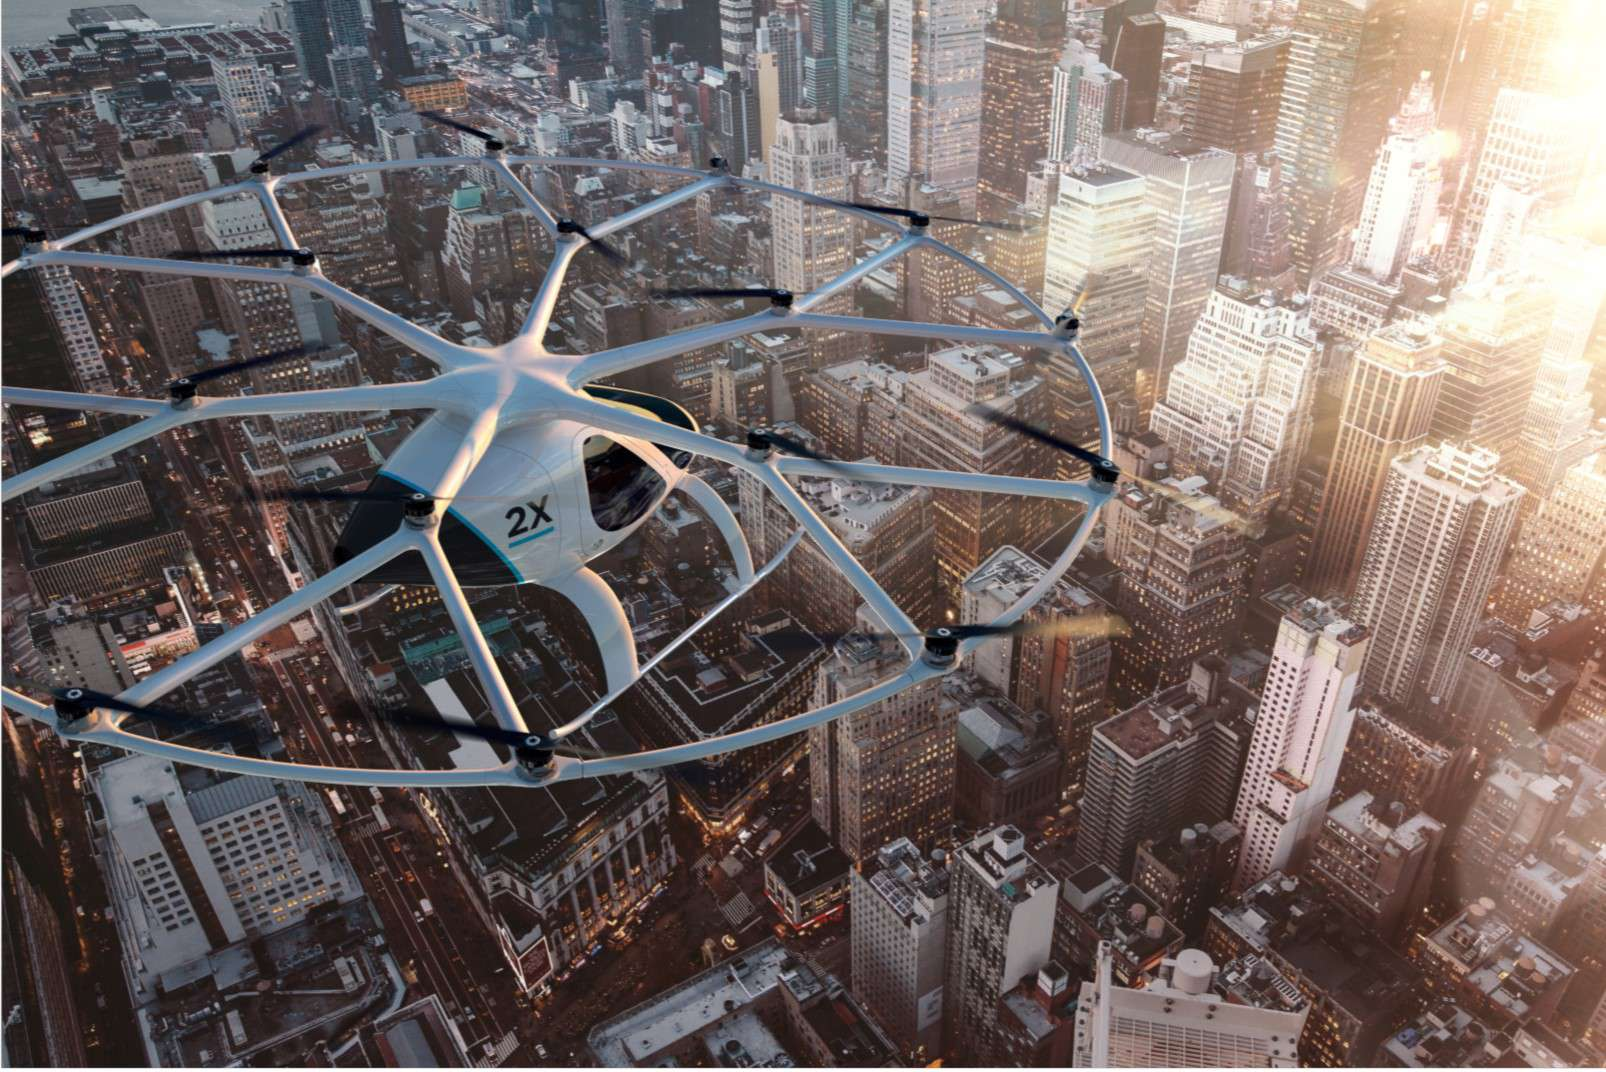 Volocopter passenger-carrying drone above city